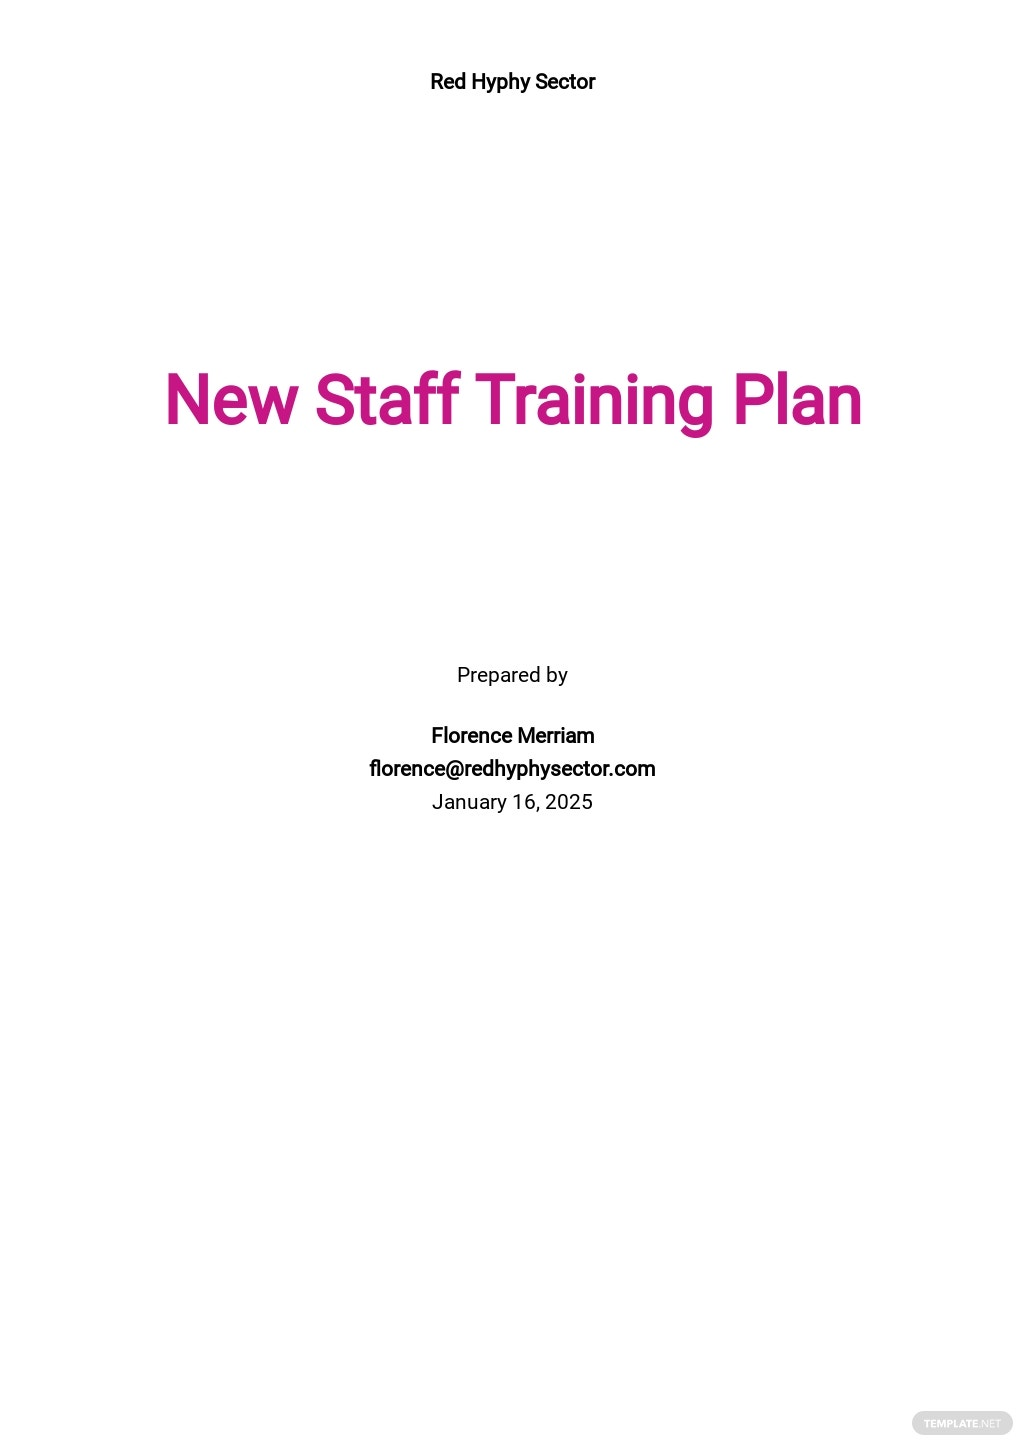 New staff Training Plan Template